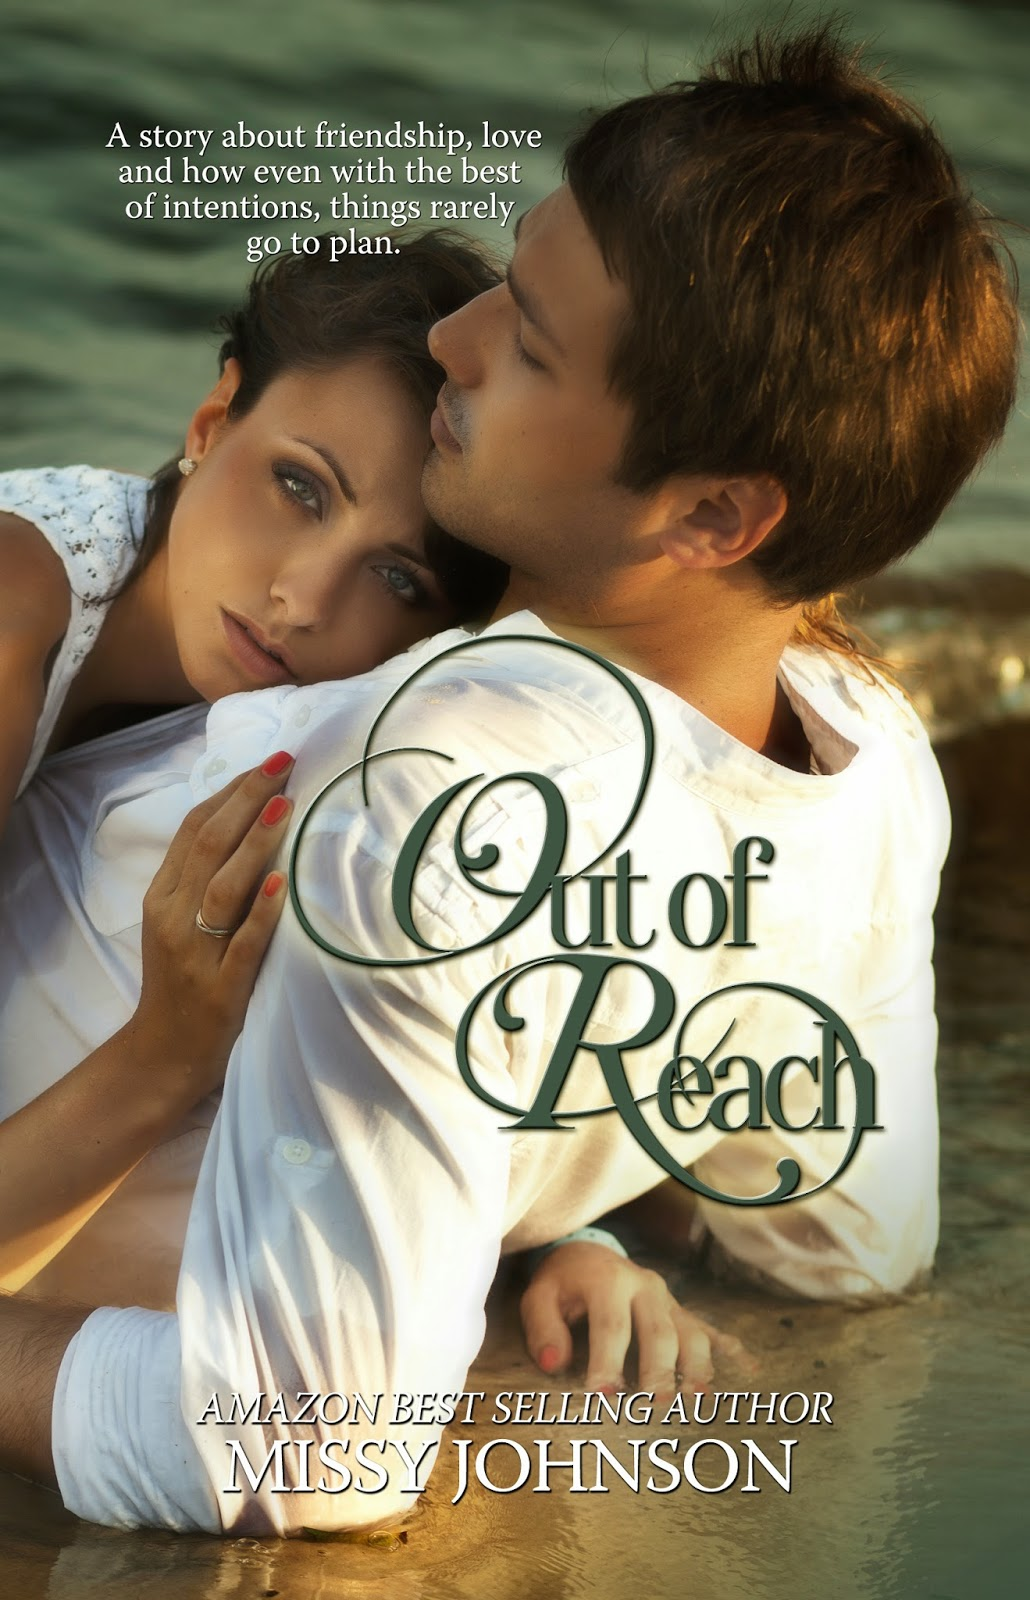 Out of Reach by Missy Johnson Release Blitz